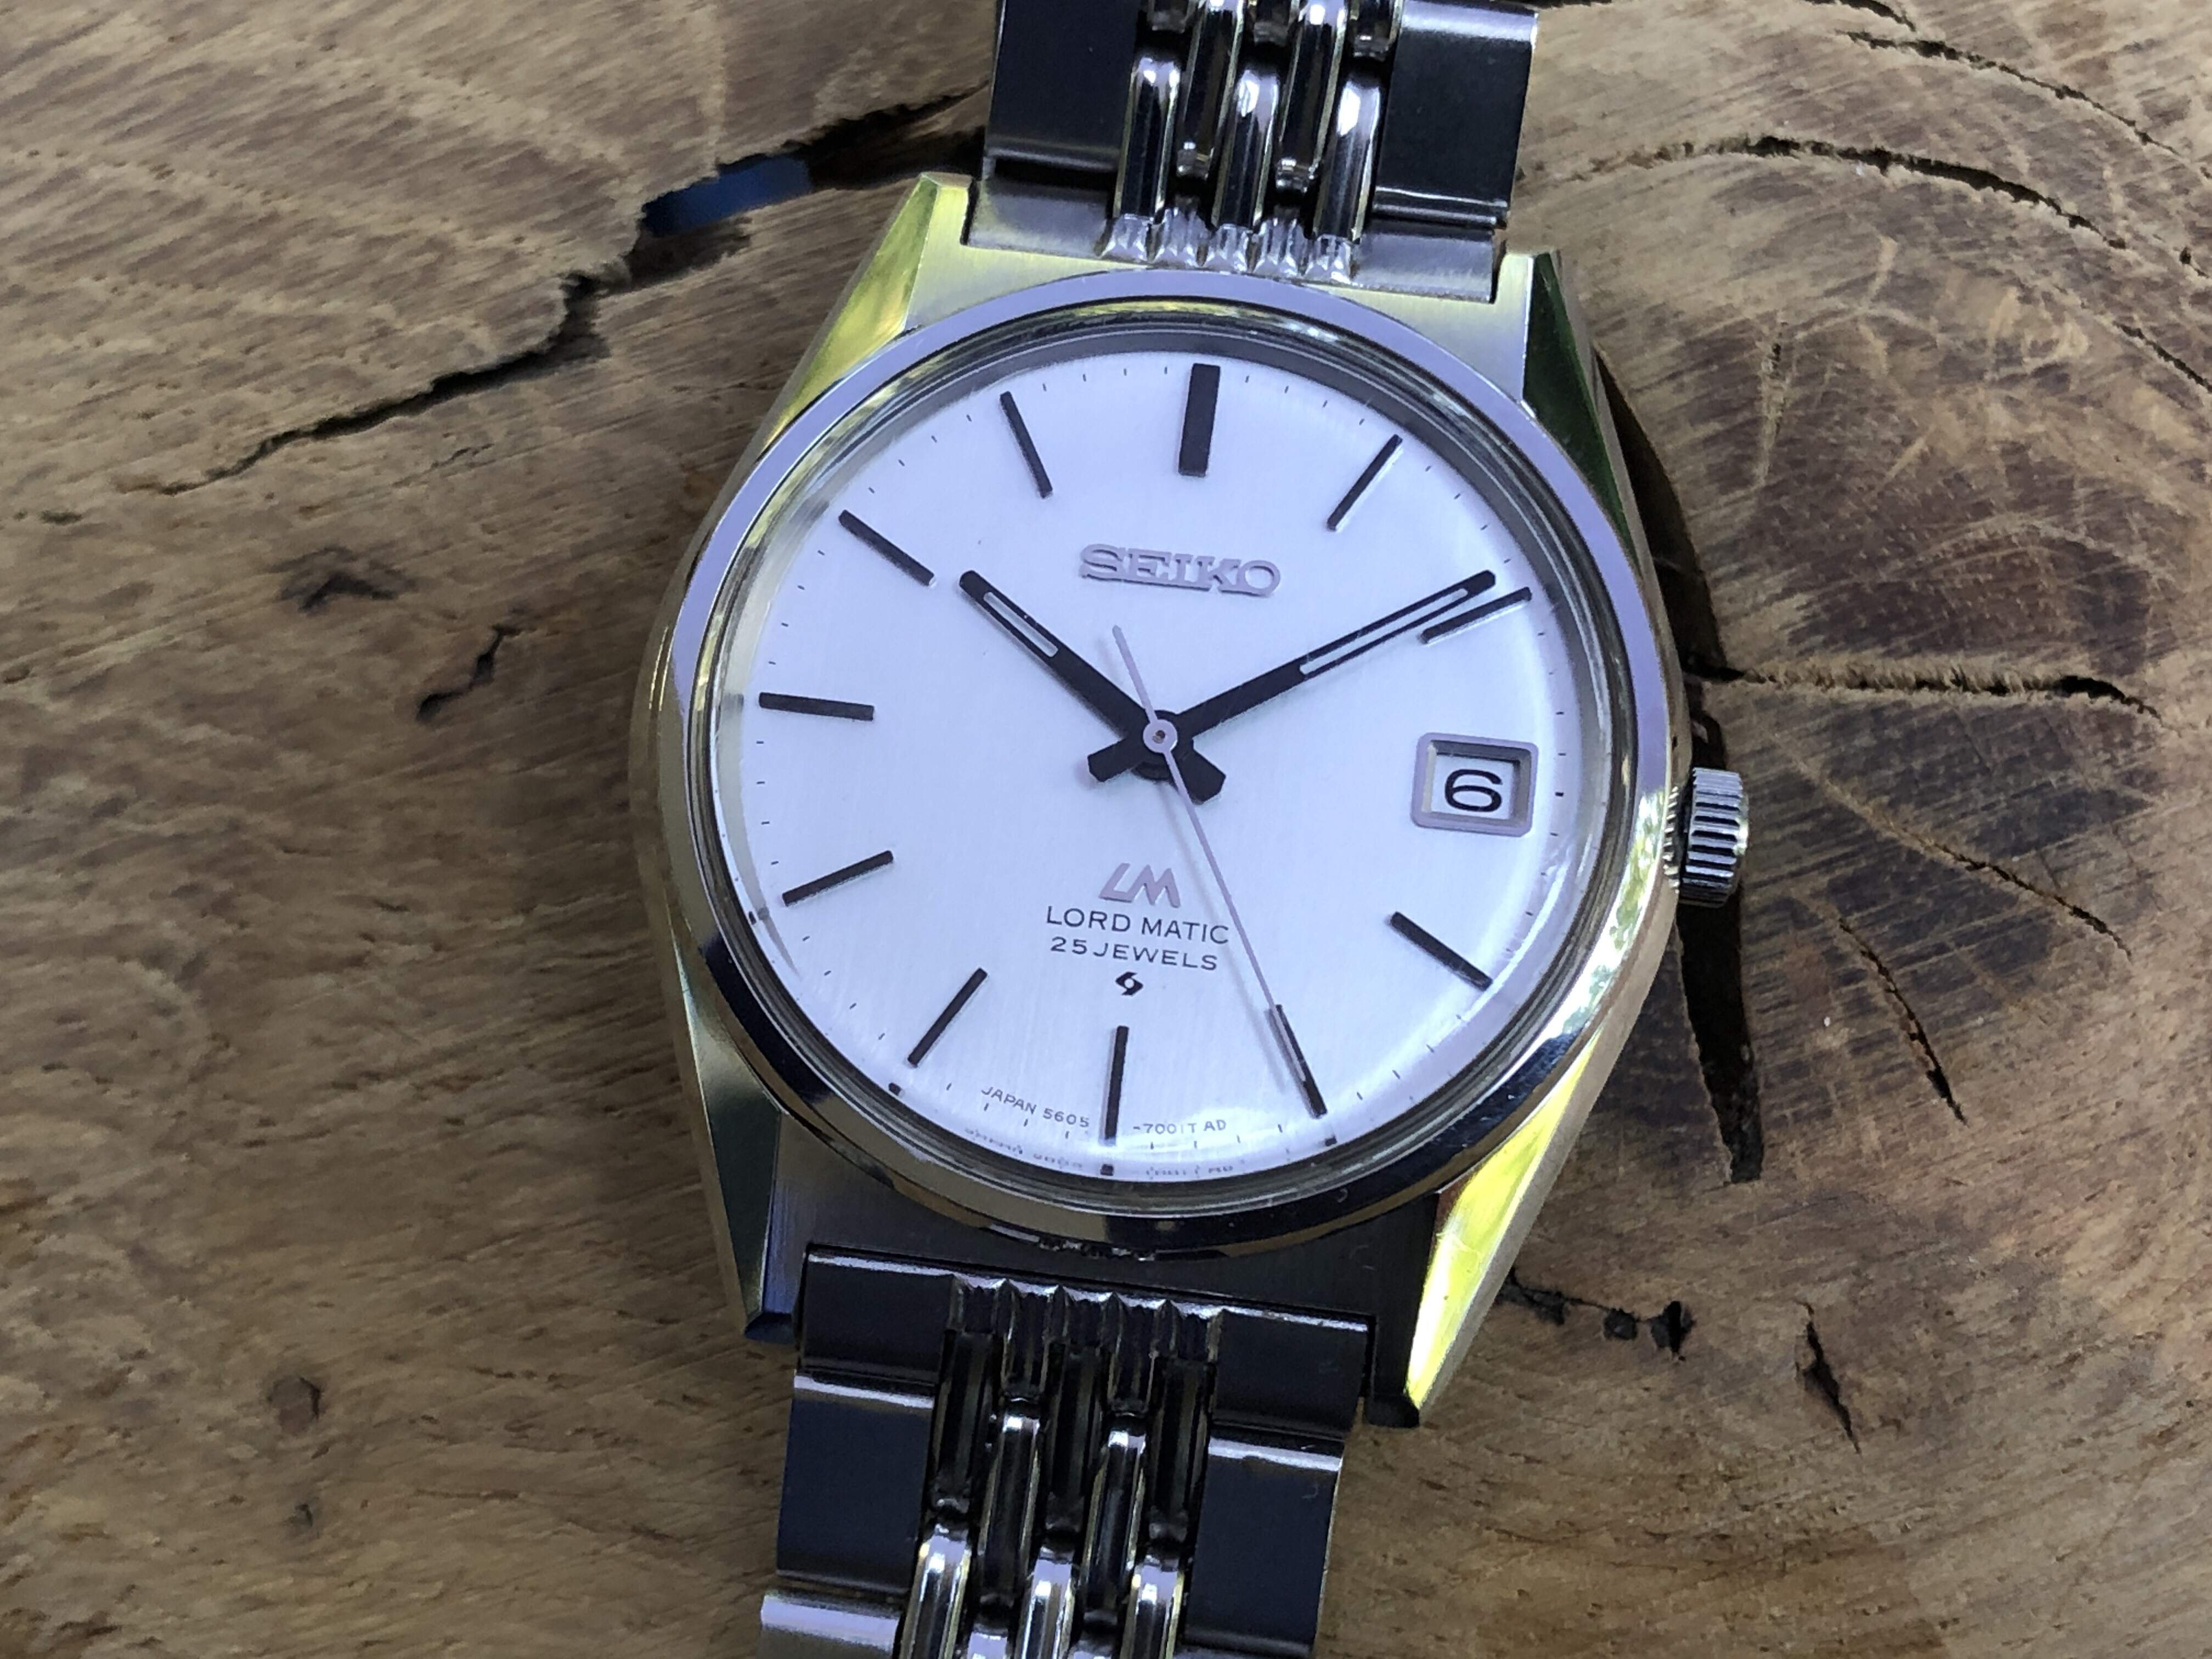 Seiko Lord-Matic 5605-7020 (Sold)